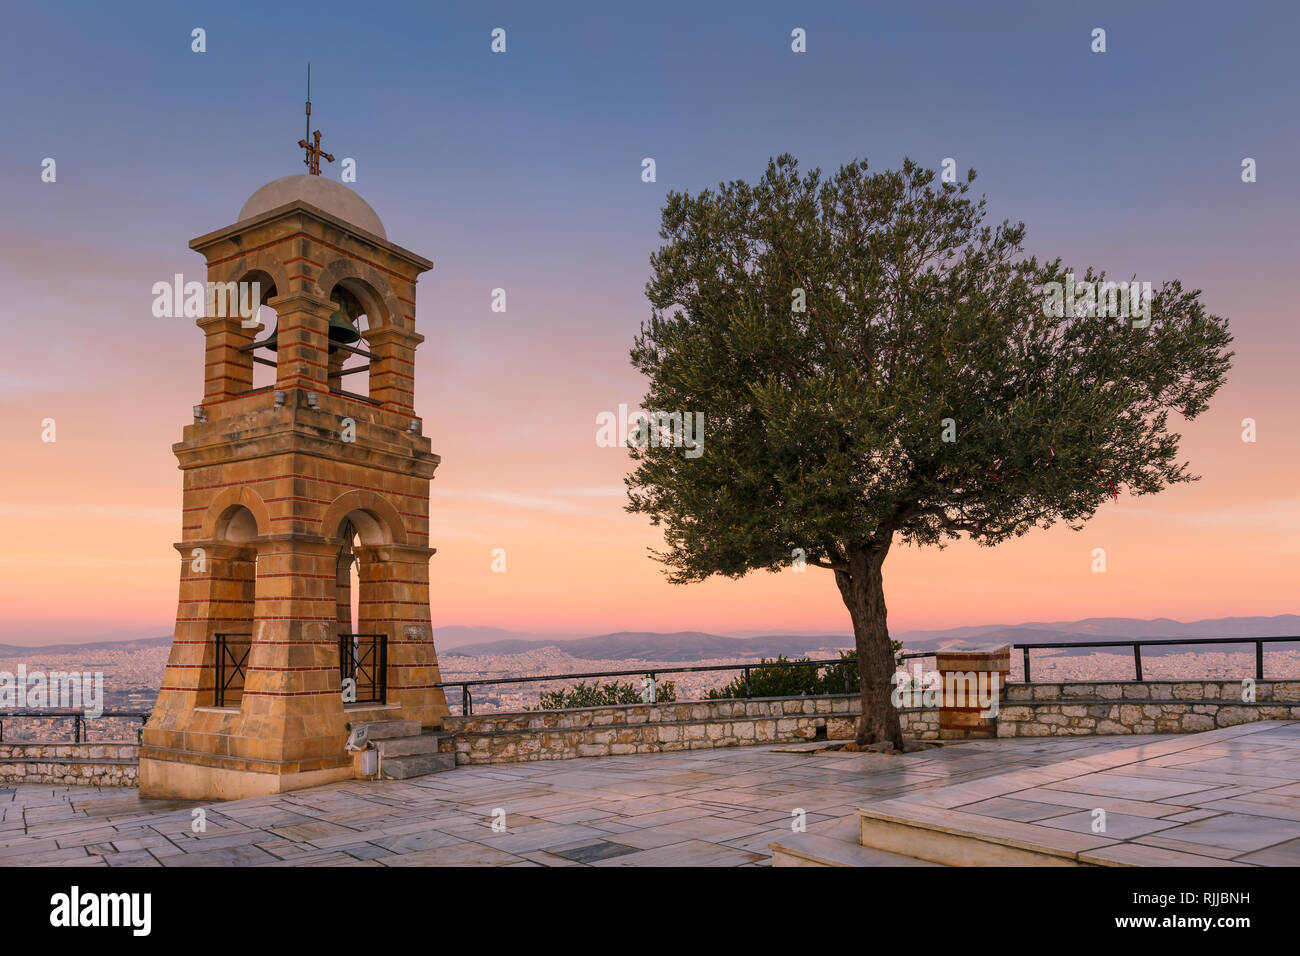 Bell tower of the 19th century Chapel of St. George on the summit of Lycabettus hill in Athens, Greece. - Stock Image